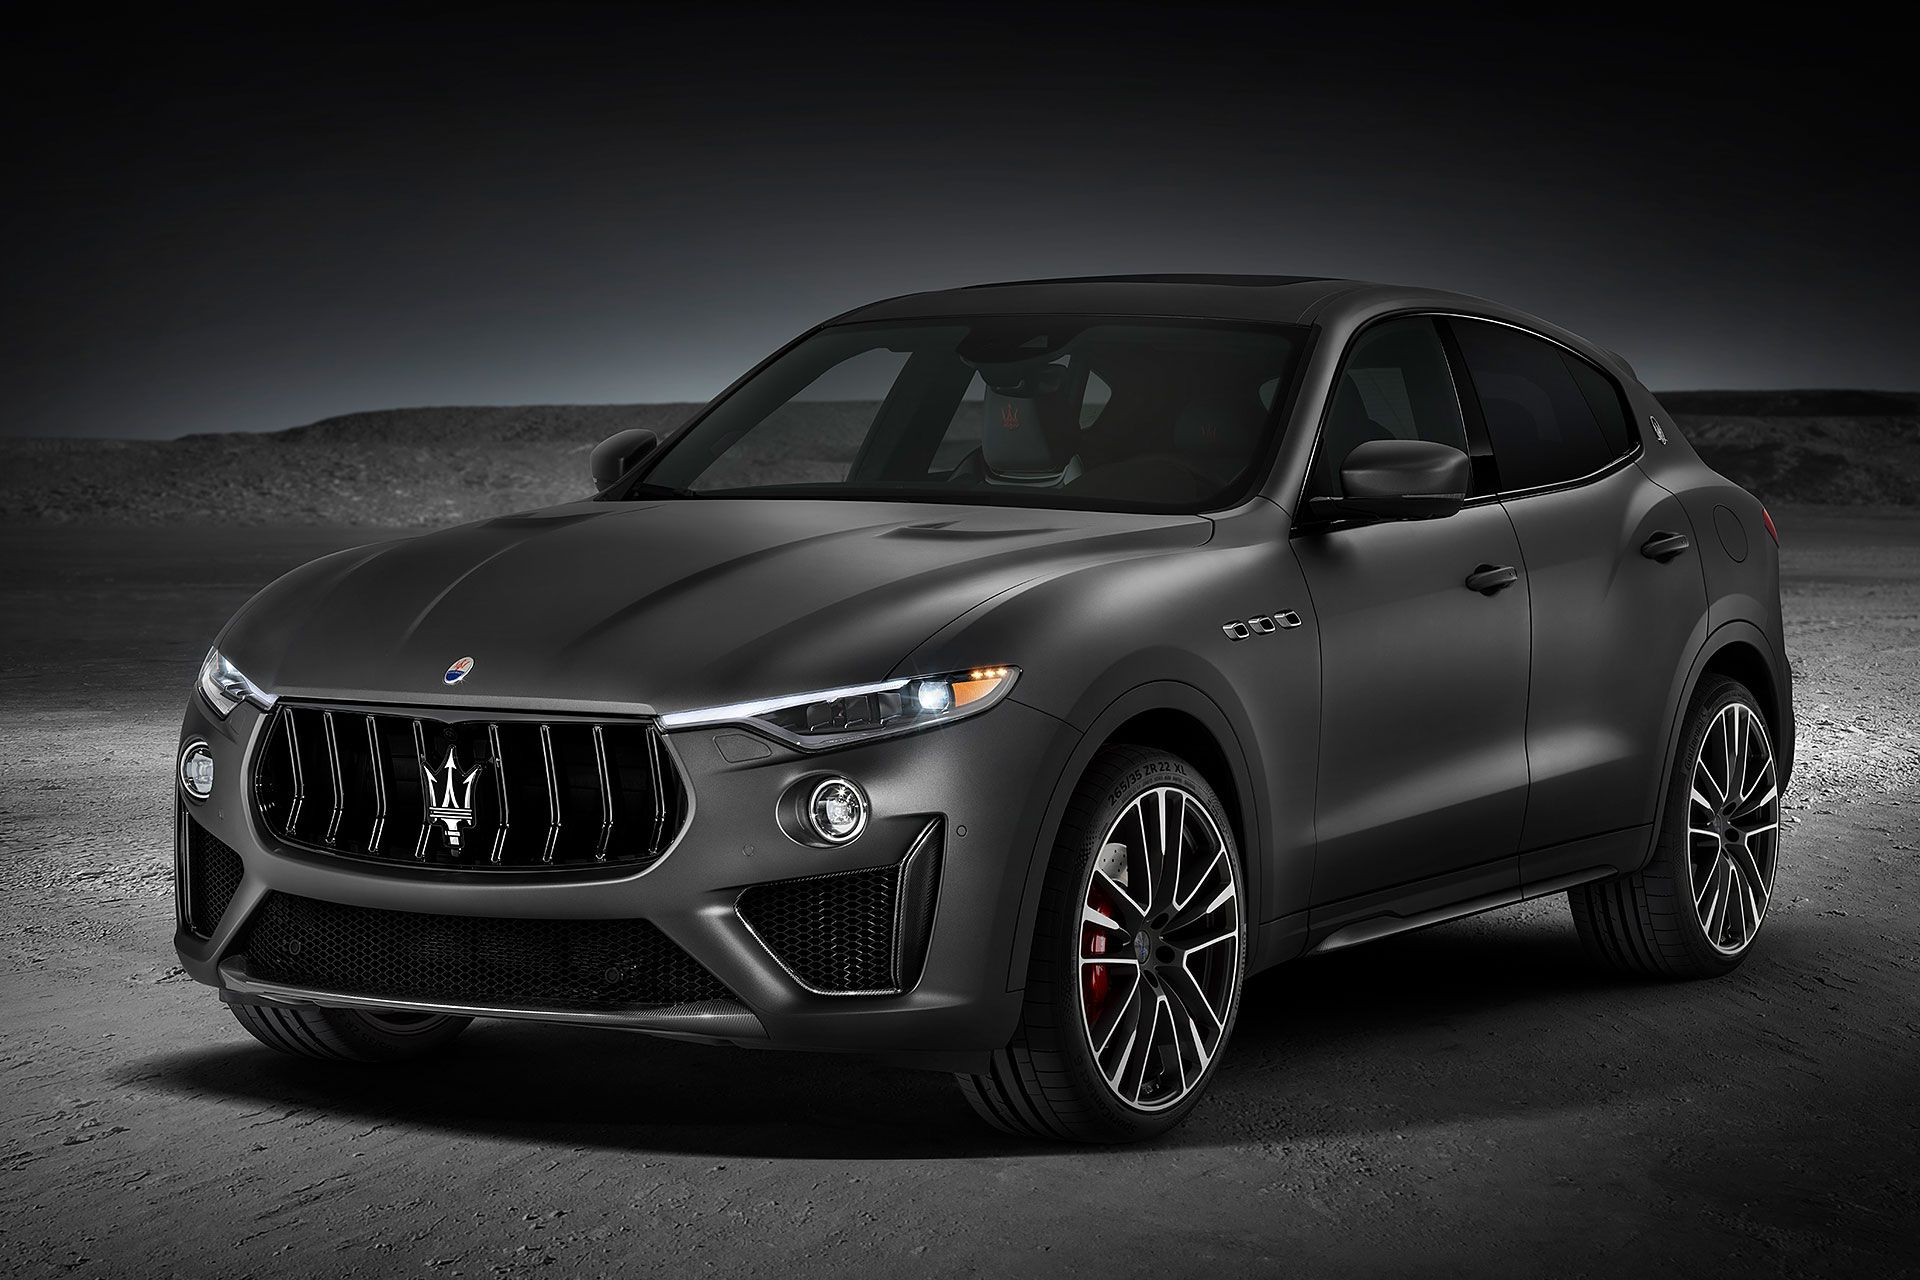 maserati levante trofeo the grails pinterest maserati cars rh pinterest com